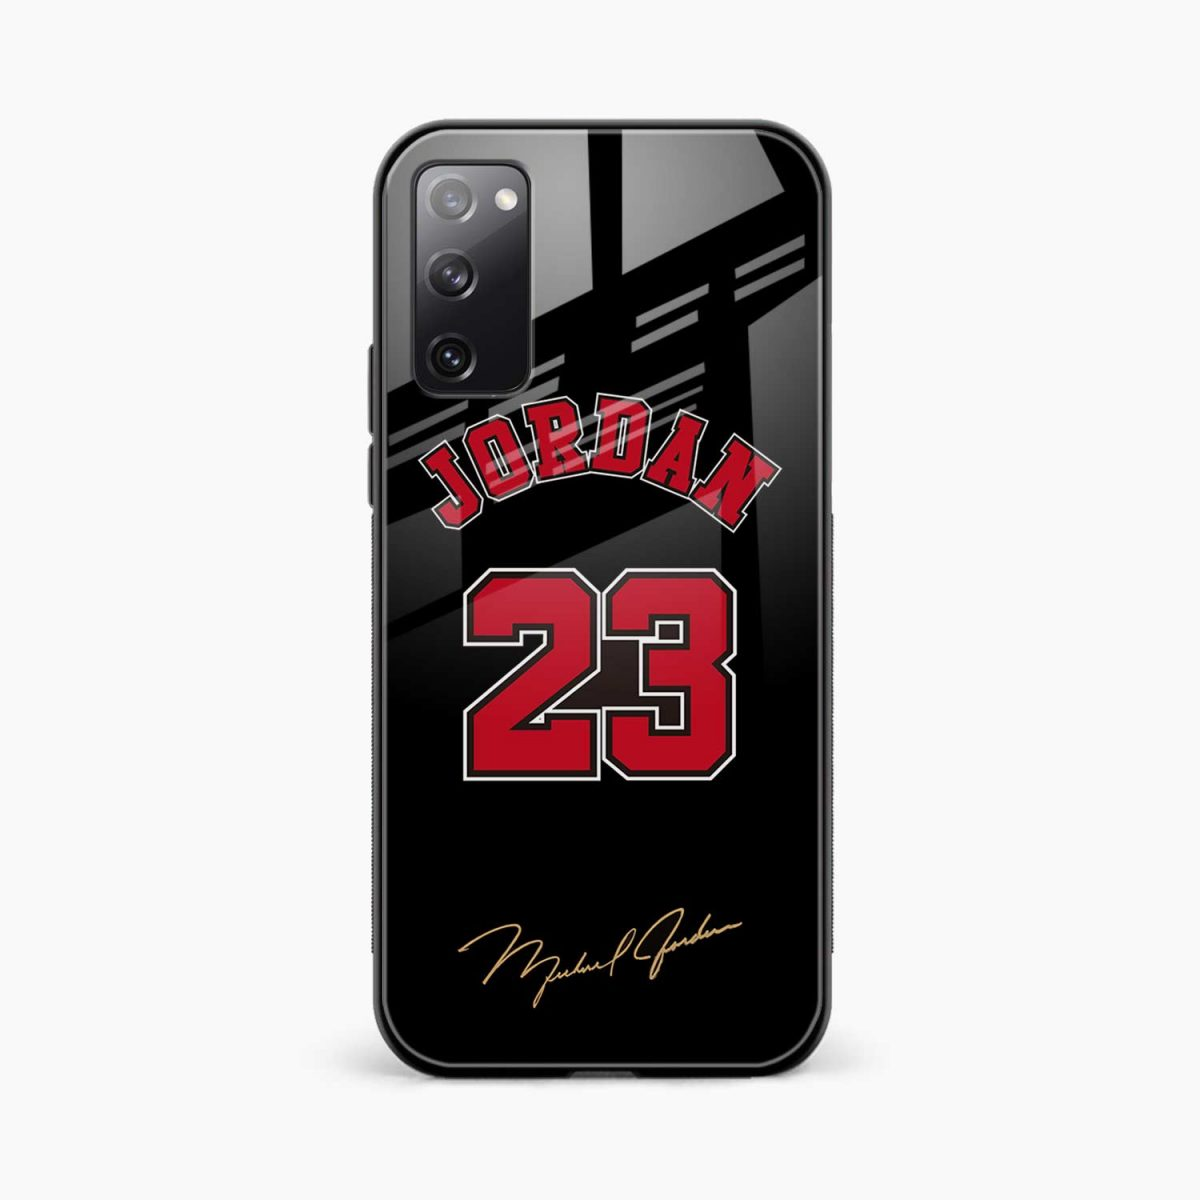 jordan front view samsung galaxy s20 fe back cover